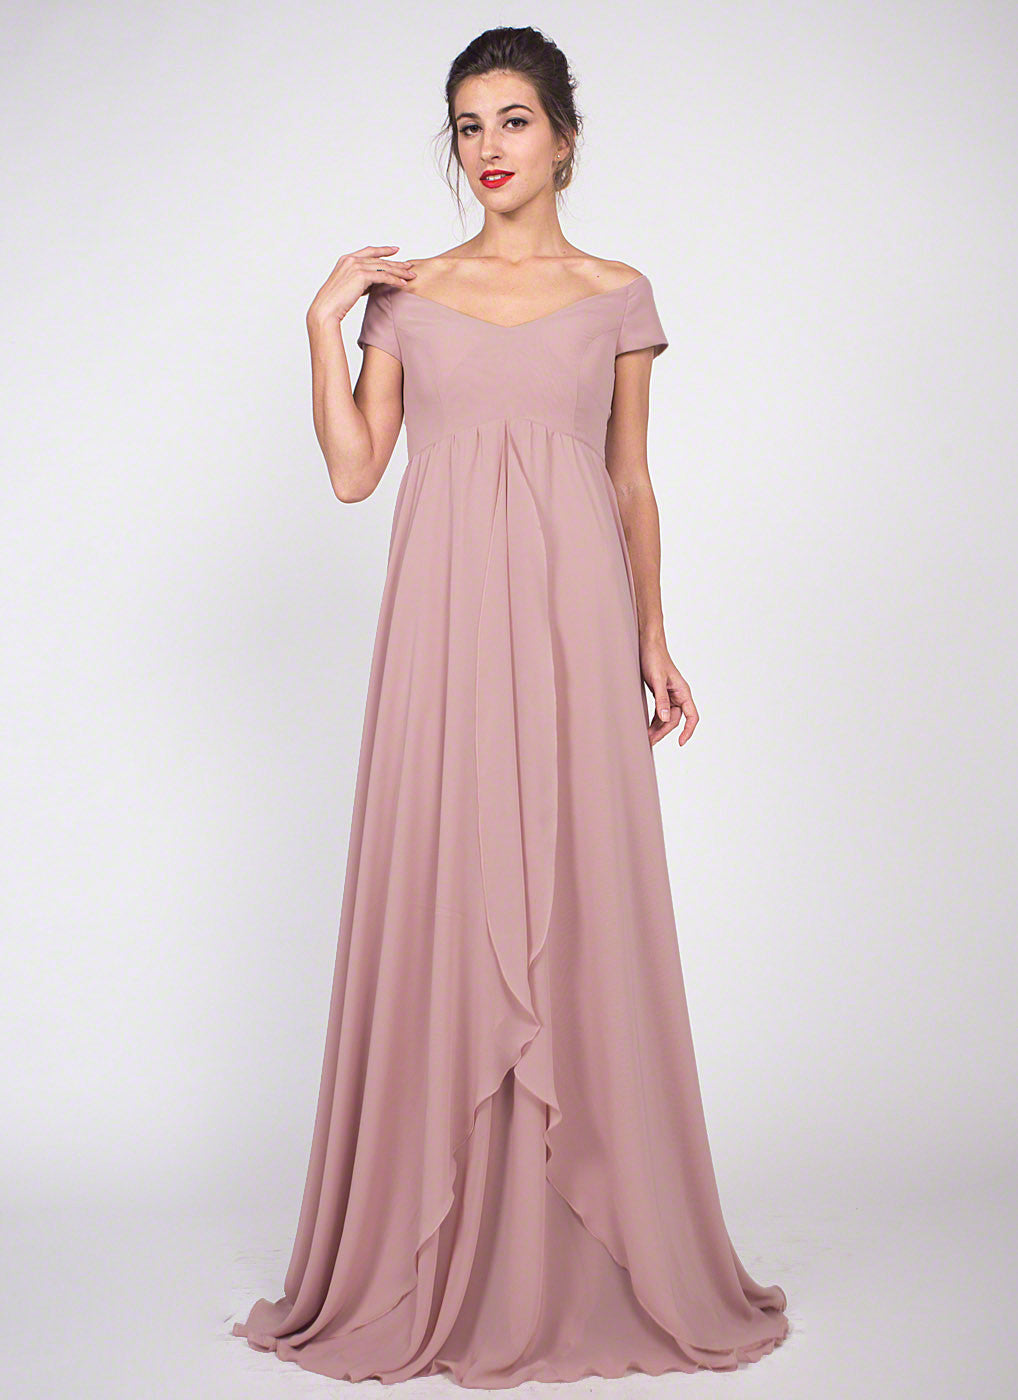 Dusty rose pink off the shoulder chiffon maxi dress bridesmaid dusty rose pink chiffon maxi dress bridesmaid dress off shoulder chiffon prom dress with asymmetric layered ombrellifo Gallery